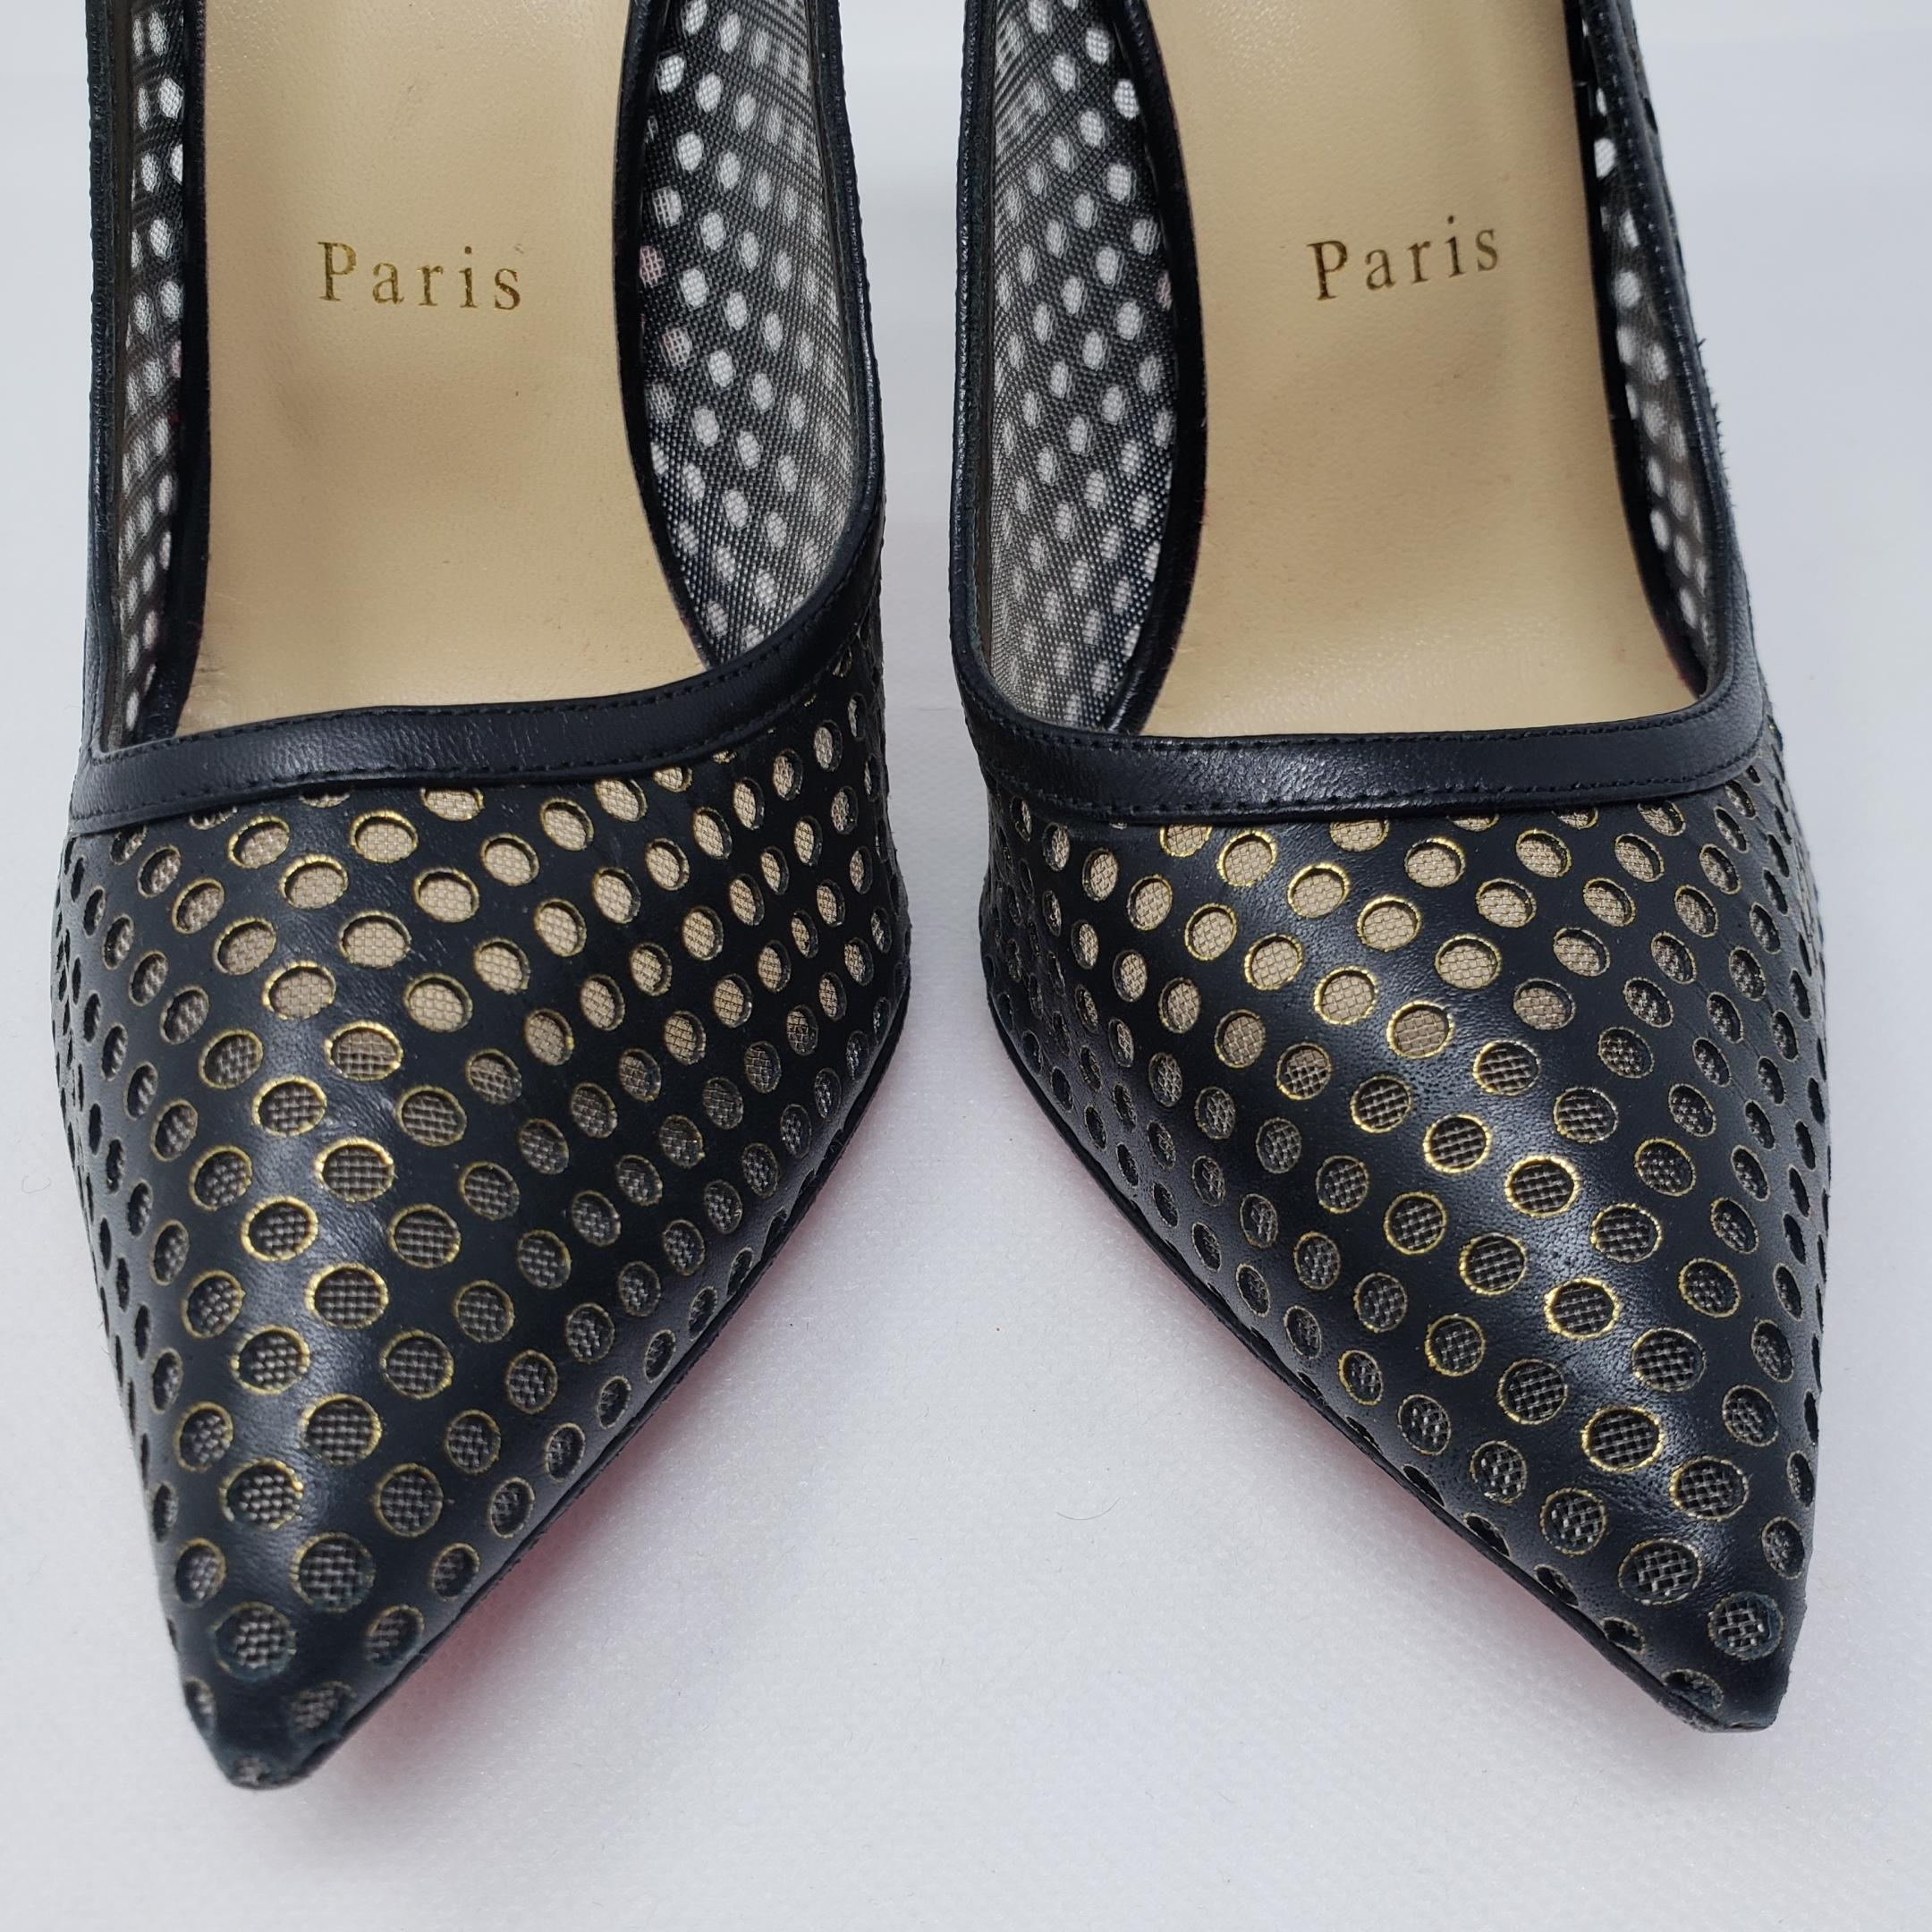 best website 54bed ae941 Christian Louboutin Black Gold Leather Guni Spike Pumps Size ...